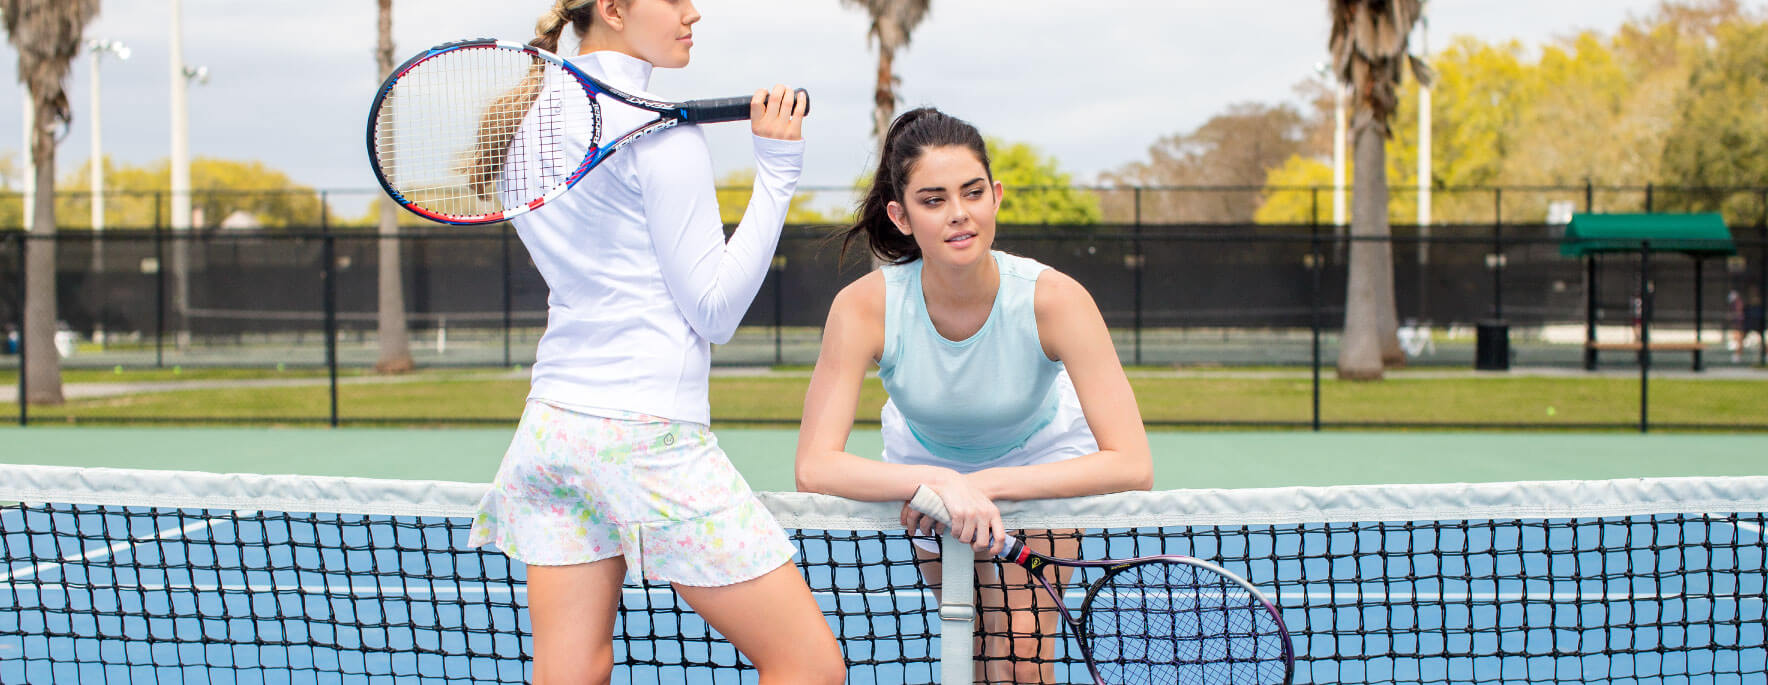 women's tennis and golf skirts on sale